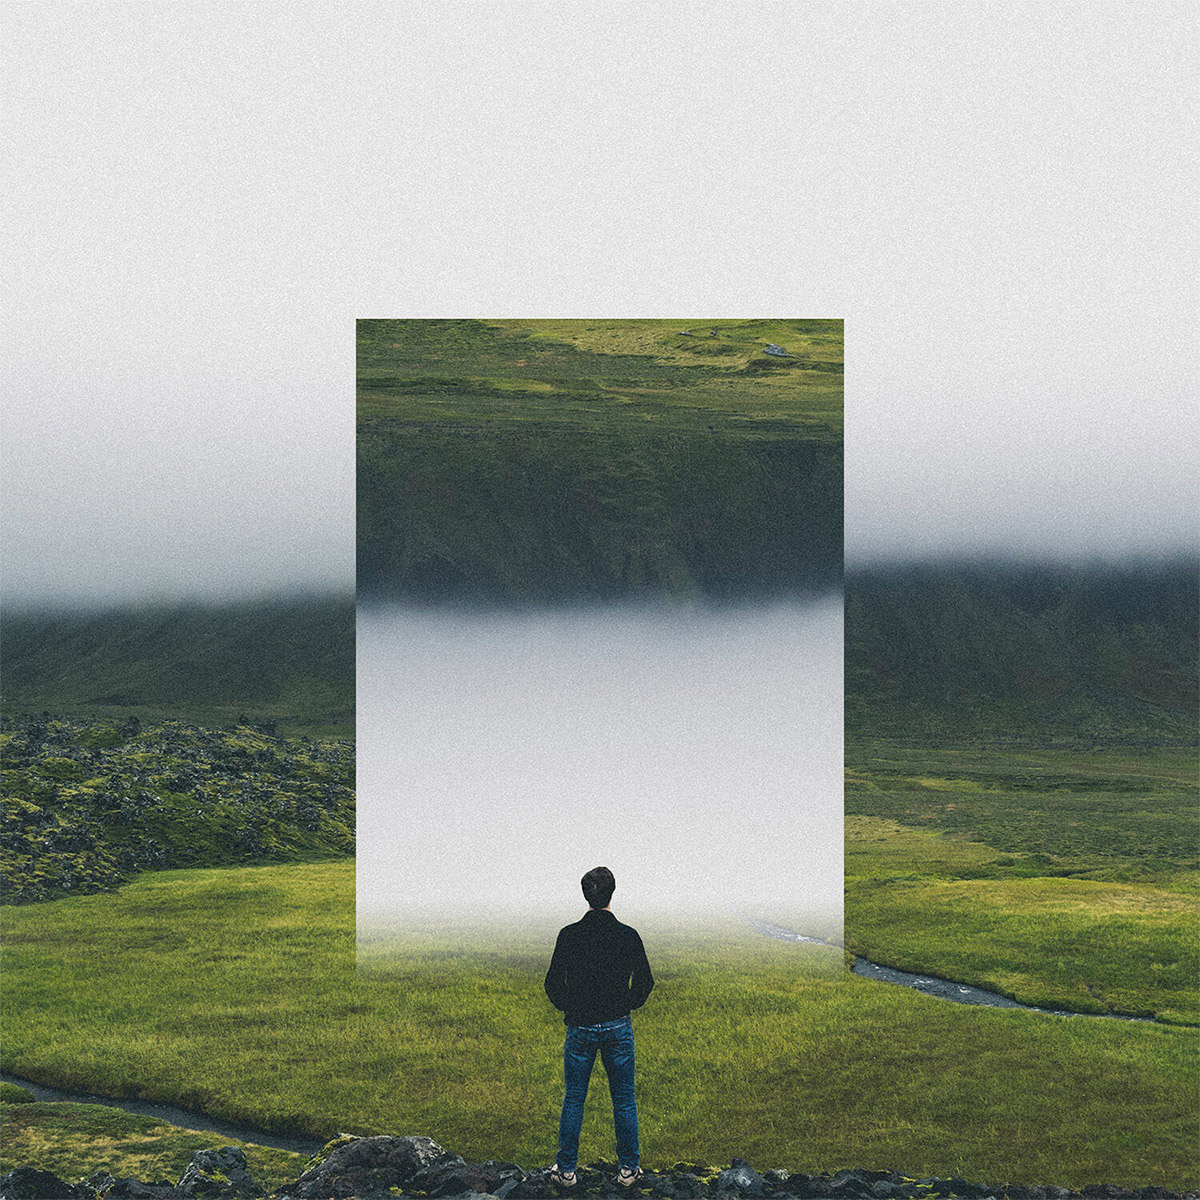 Minimalist Landscapes, Mirrored